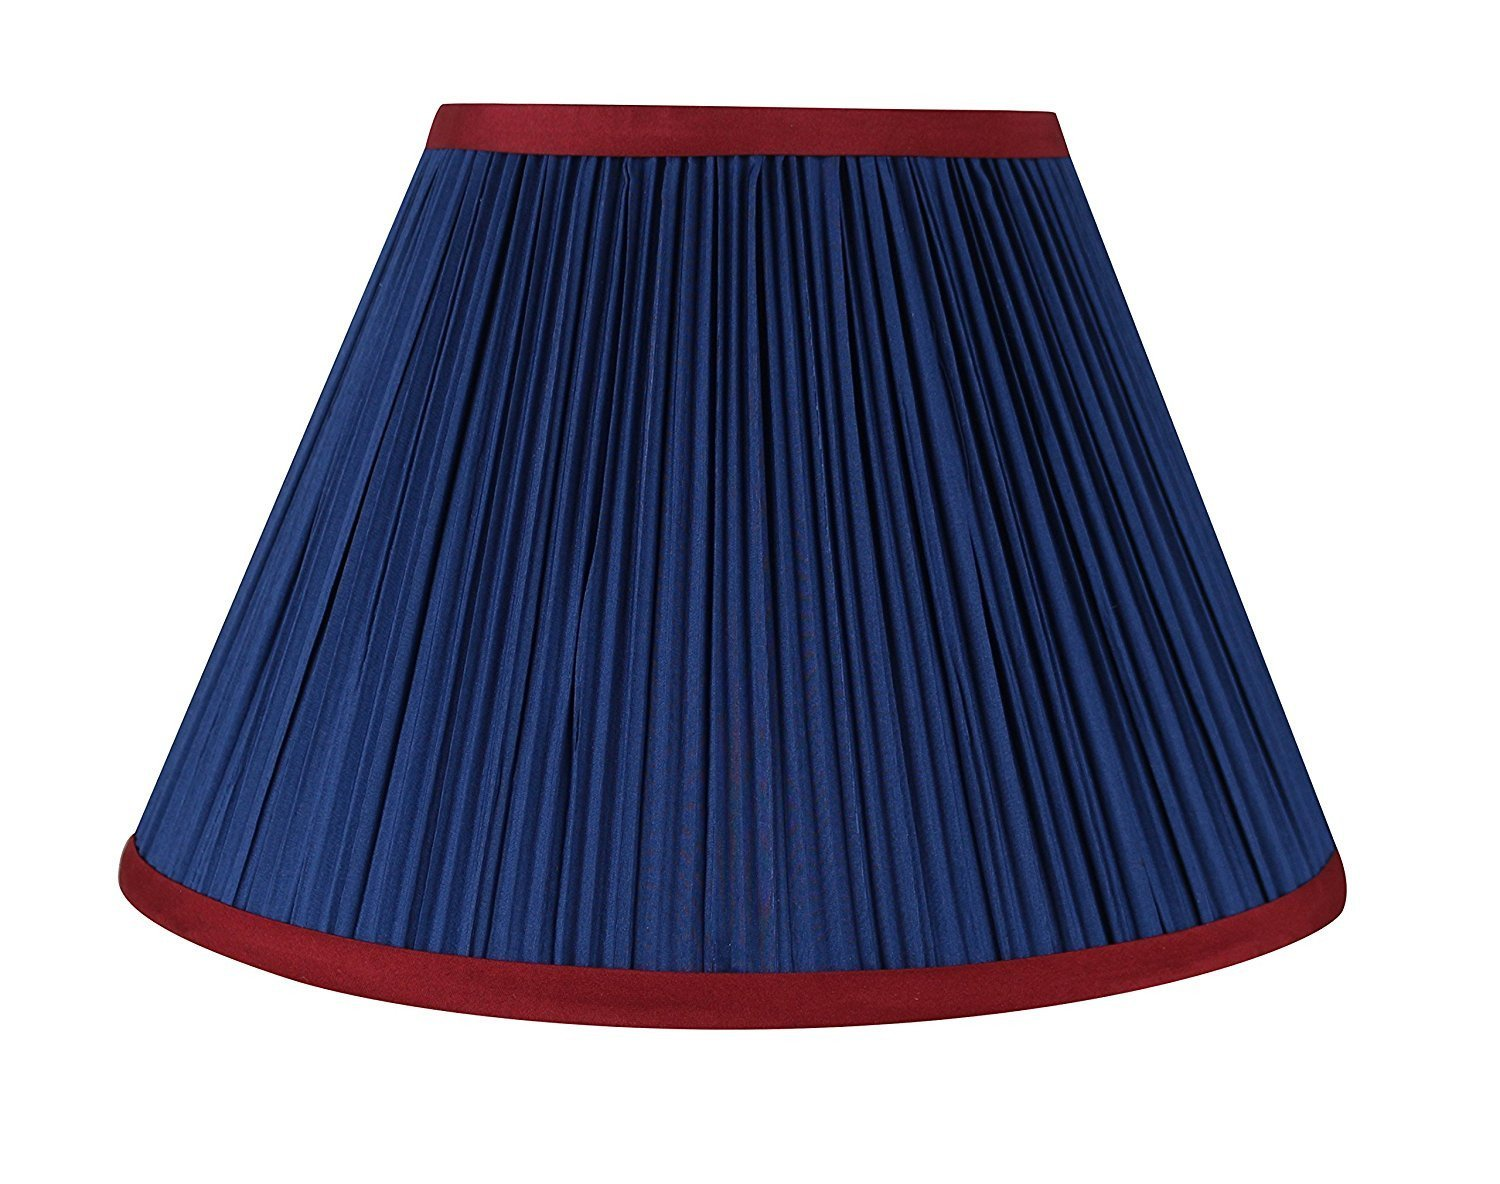 Mushroom Pleated Softback 12-inch Lamp Shade - 6 Colors